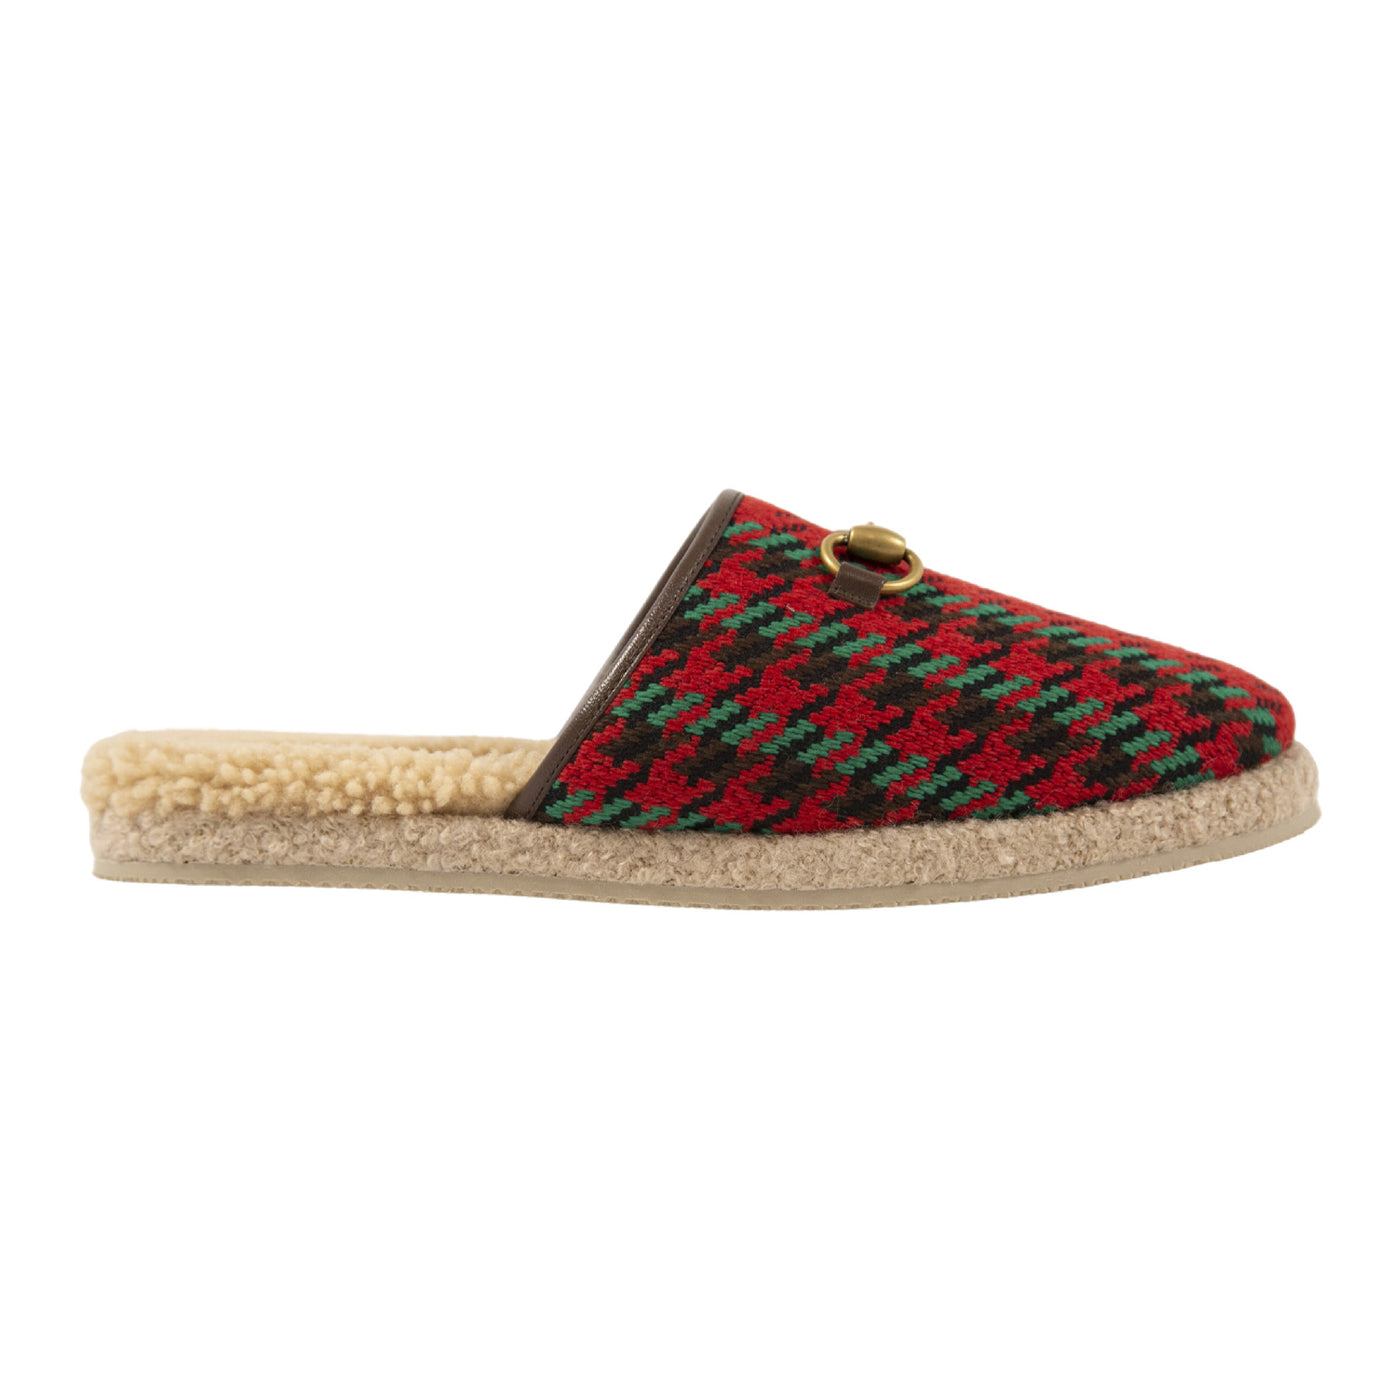 Load image into Gallery viewer, GUCCI PLAID FUR SLIP-ONS RED